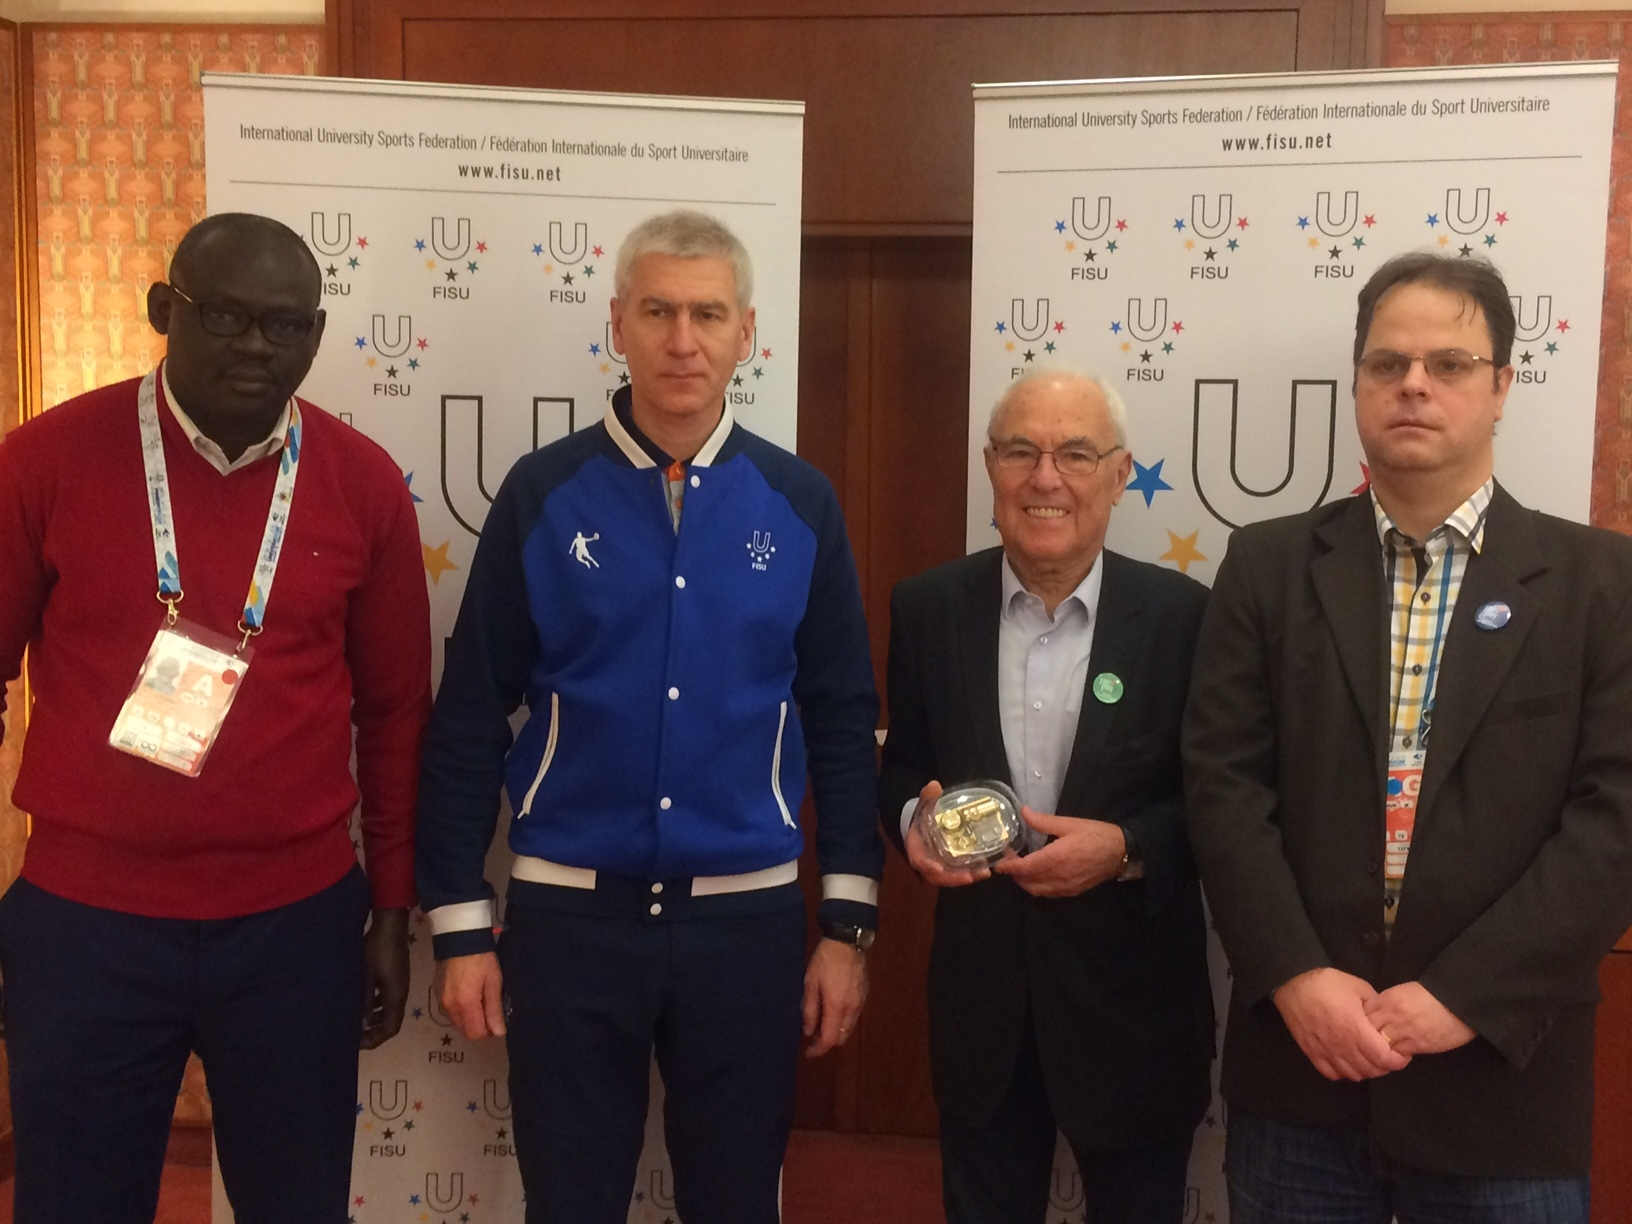 FISU leadership